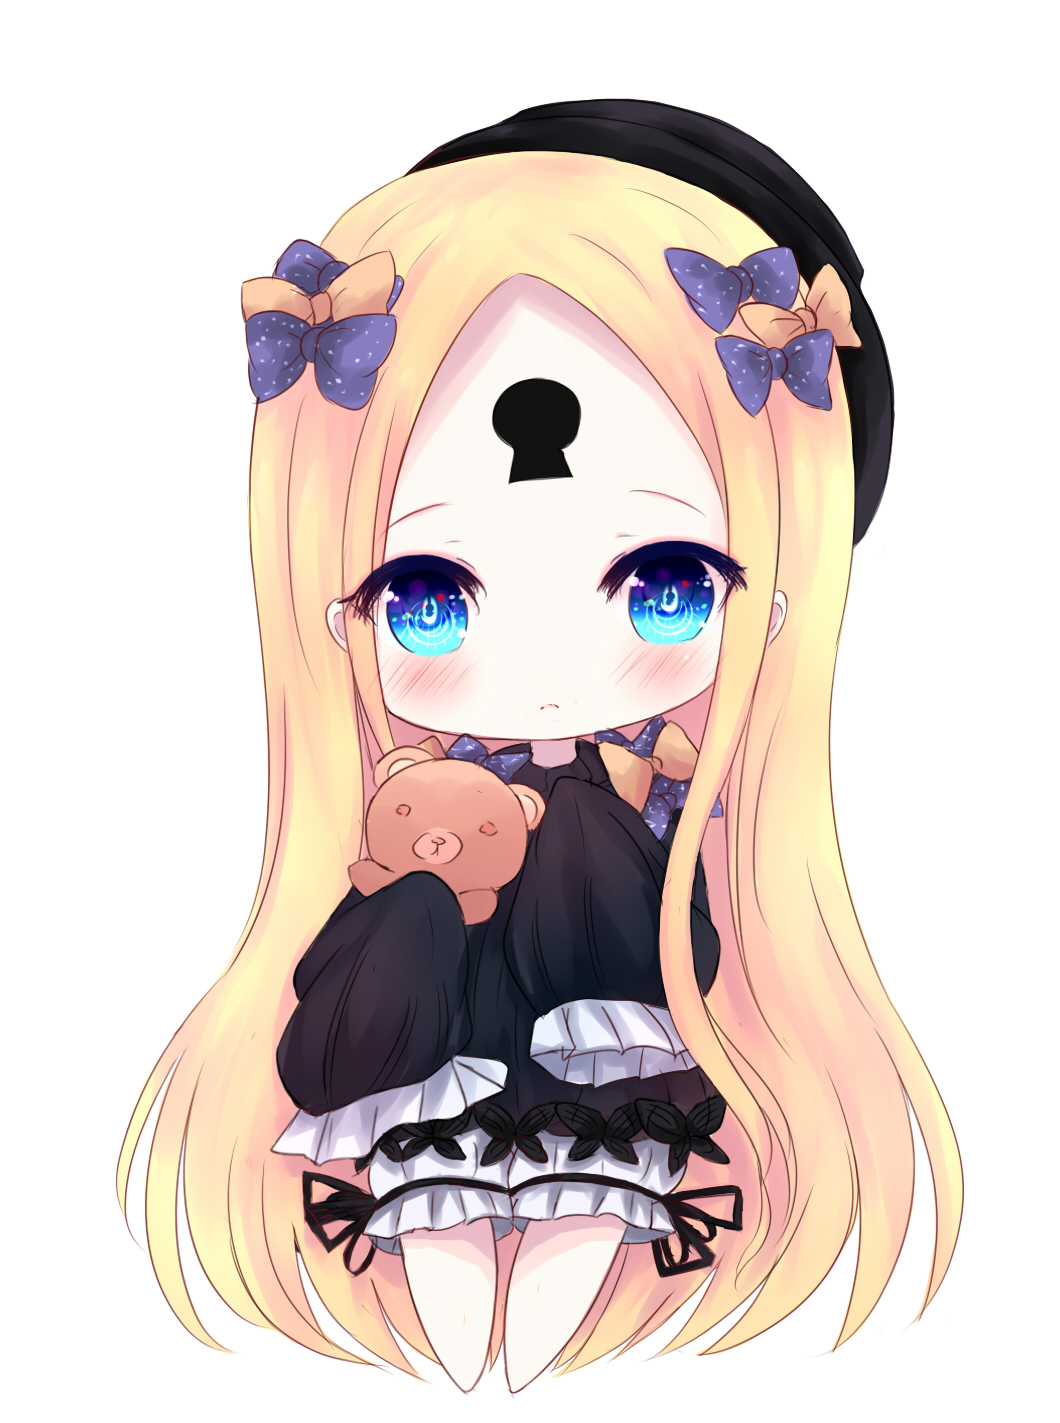 1girl abigail_williams_(fate/grand_order) bangs barefoot black_bow black_dress black_hat blonde_hair bloomers blue_eyes blush bow butterfly chibi closed_mouth dress fate/grand_order fate_(series) full_body hair_bow hat head_tilt highres keyhole long_hair long_sleeves looking_at_viewer miko_(no1122334455a) object_hug orange_bow parted_bangs polka_dot polka_dot_bow simple_background sleeves_past_wrists solo standing stuffed_animal stuffed_toy teddy_bear underwear very_long_hair white_background white_bloomers